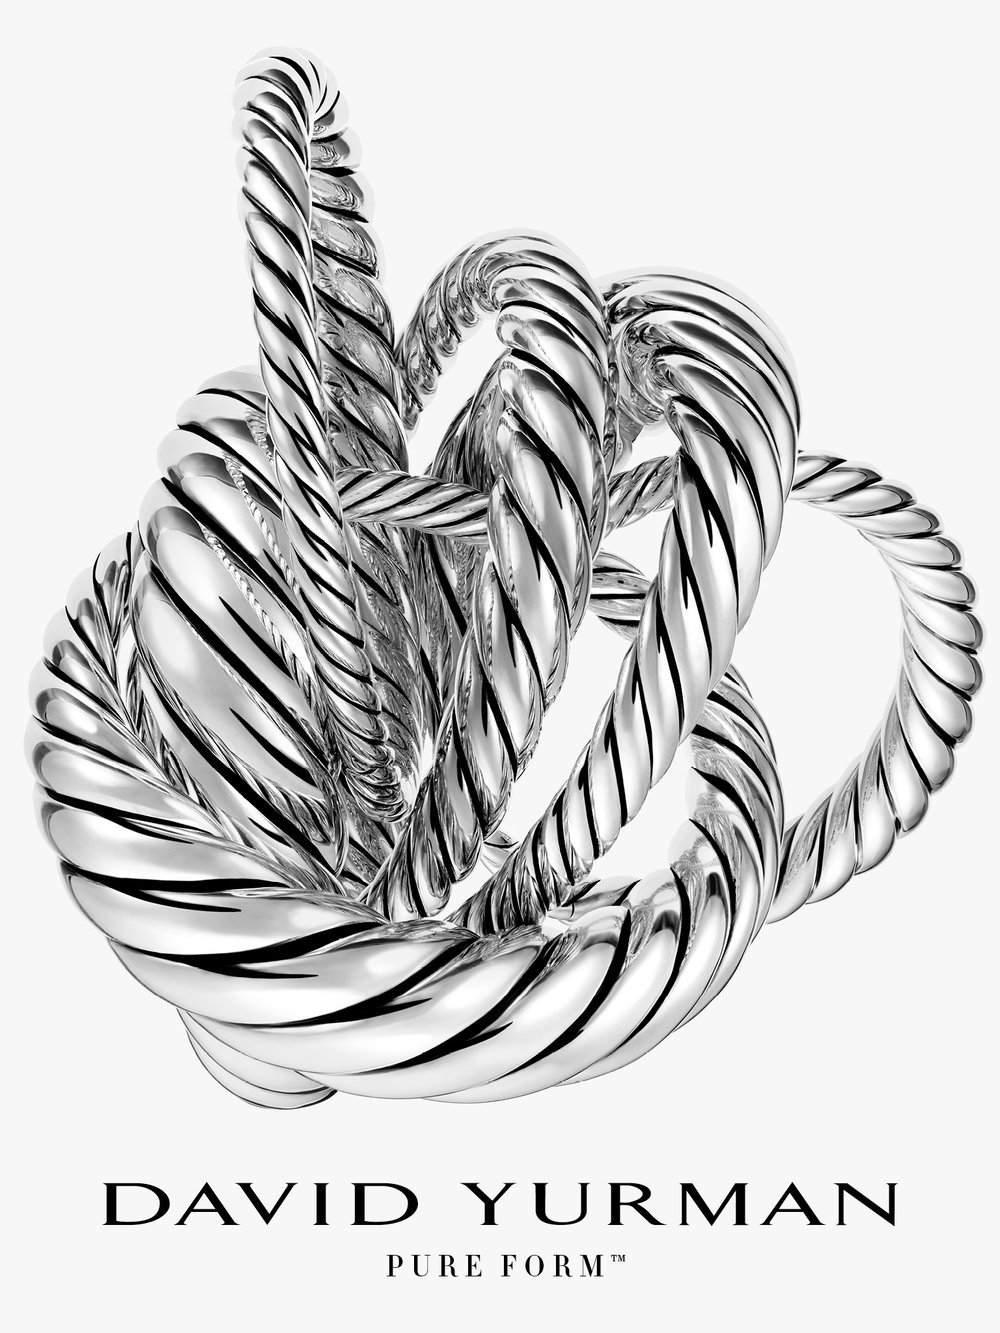 Client: David Yurman Art director: Sam Shahid Photographer: Ilan Rubin Product: Pure Form